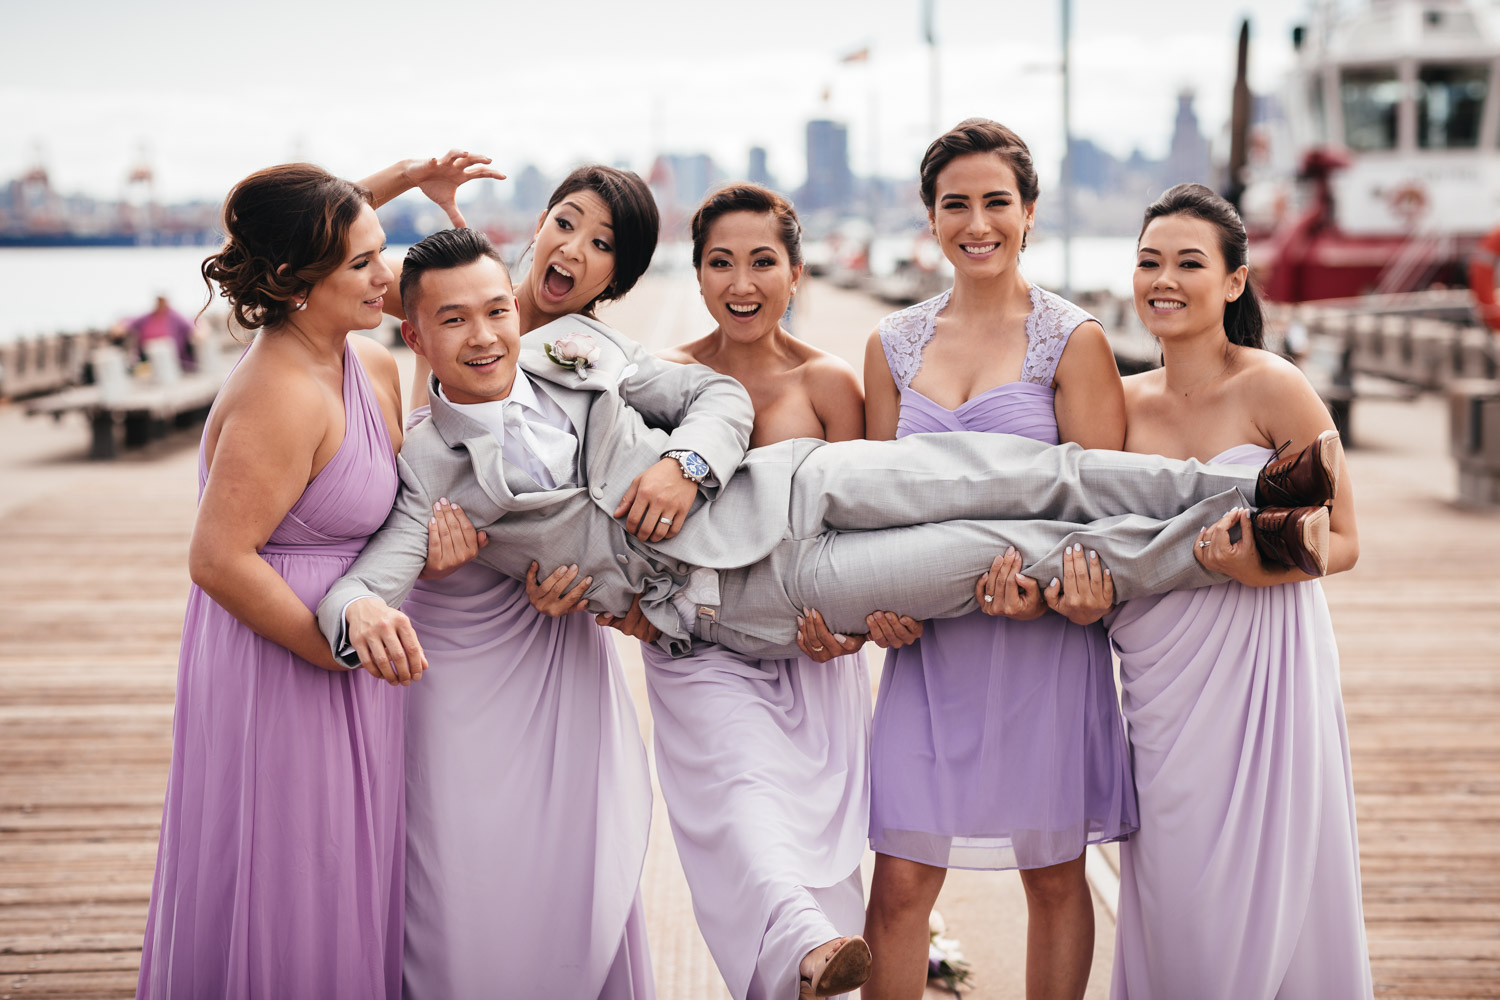 groom with bridesmaids in north vancouver for wedding at burrard dry dock pier